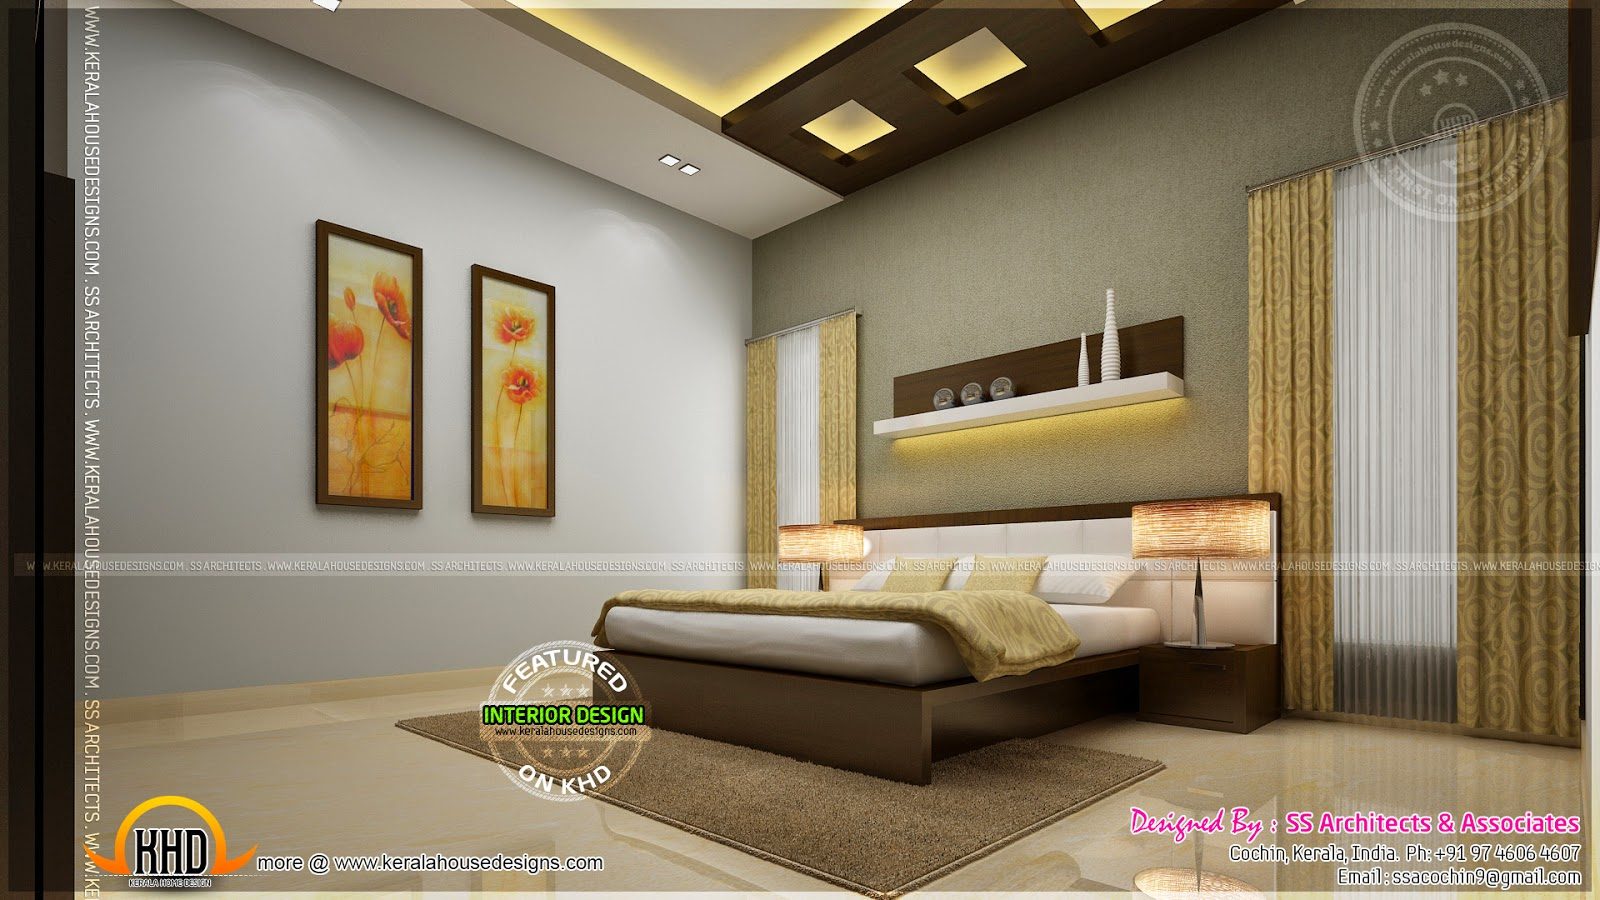 Nggibrut awesome master bedroom interior Photos of bedroom designs